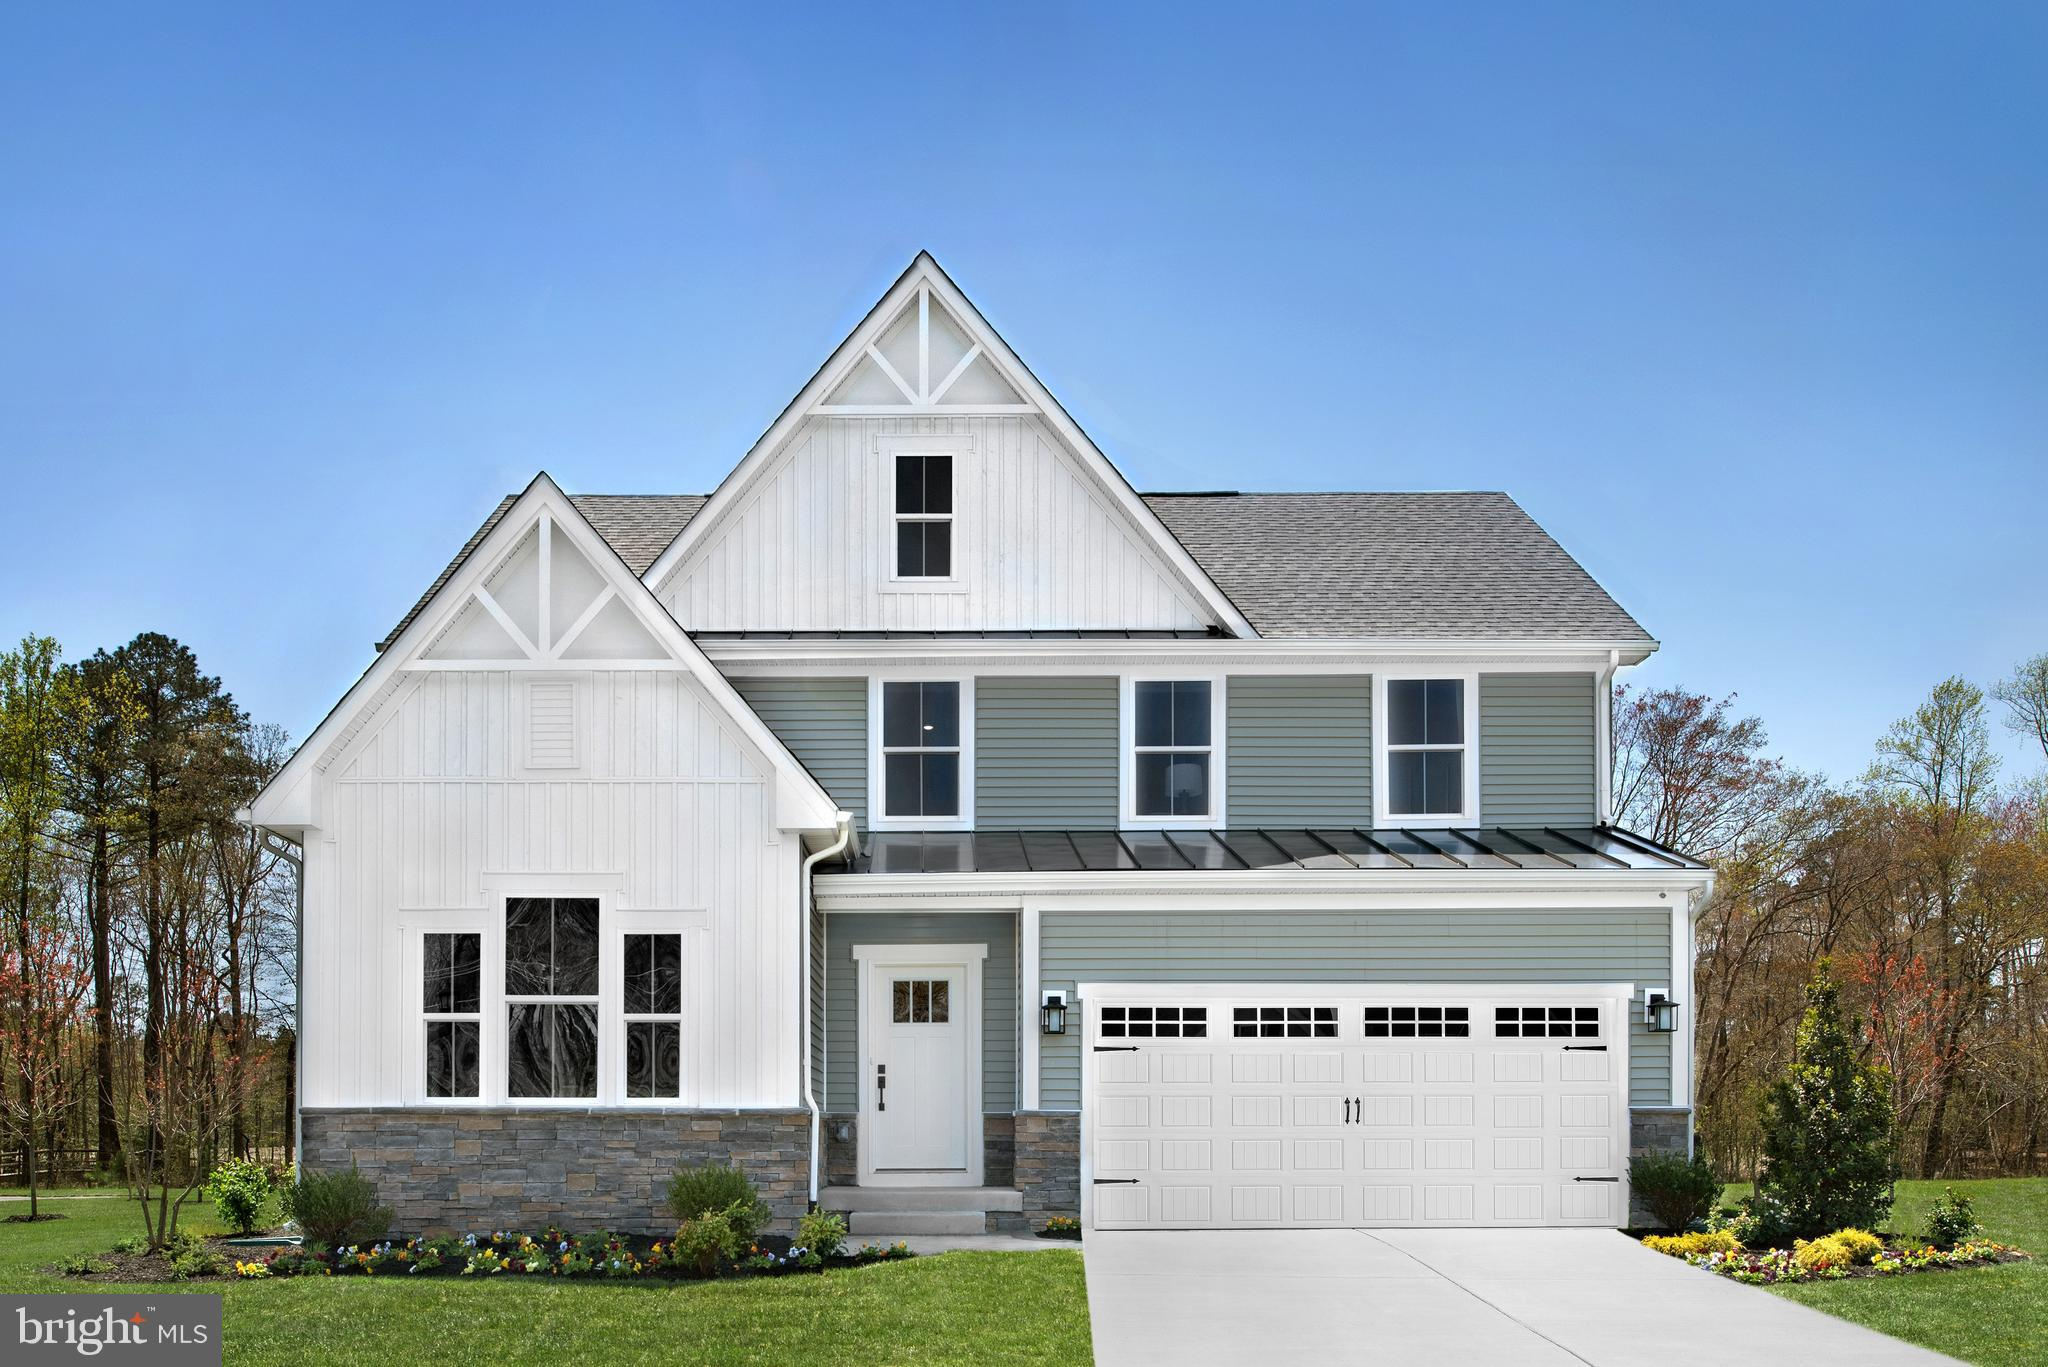 The Stapleton offers the convenience of one-floor living with the space of a two-story home. https://www.nvhomes.com/new-homes/communities/the-estuary. This example features elevation K with a board & batten/siding veneer. The open foyer flows seamlessly into the dining room past the guest bedroom on first floor. A convenient powder room behind the split stair. The living areas of the ~Stapleton~ are open-concept with an open spacious great room. The kitchen sports upgraded cabinets, farmhouse sink and backsplash with a large, functional island and a morning room extension for even more space. Extra windows ensure this is a bright spot for breakfast. The generous Private Owner~s Suite tucked behind the great room is extended outward an extra four feet and includes additional windows and a luxurious tray ceiling. The Owner~s bathroom includes a double bowl vanity and huge walk-in closet and has been customized with a fully-tiled Roman Shower with seat! Upstairs opens to a flexible spacious loft and features two additional bedrooms and another full bath. This home offers $45,290 worth of high end upgrades!